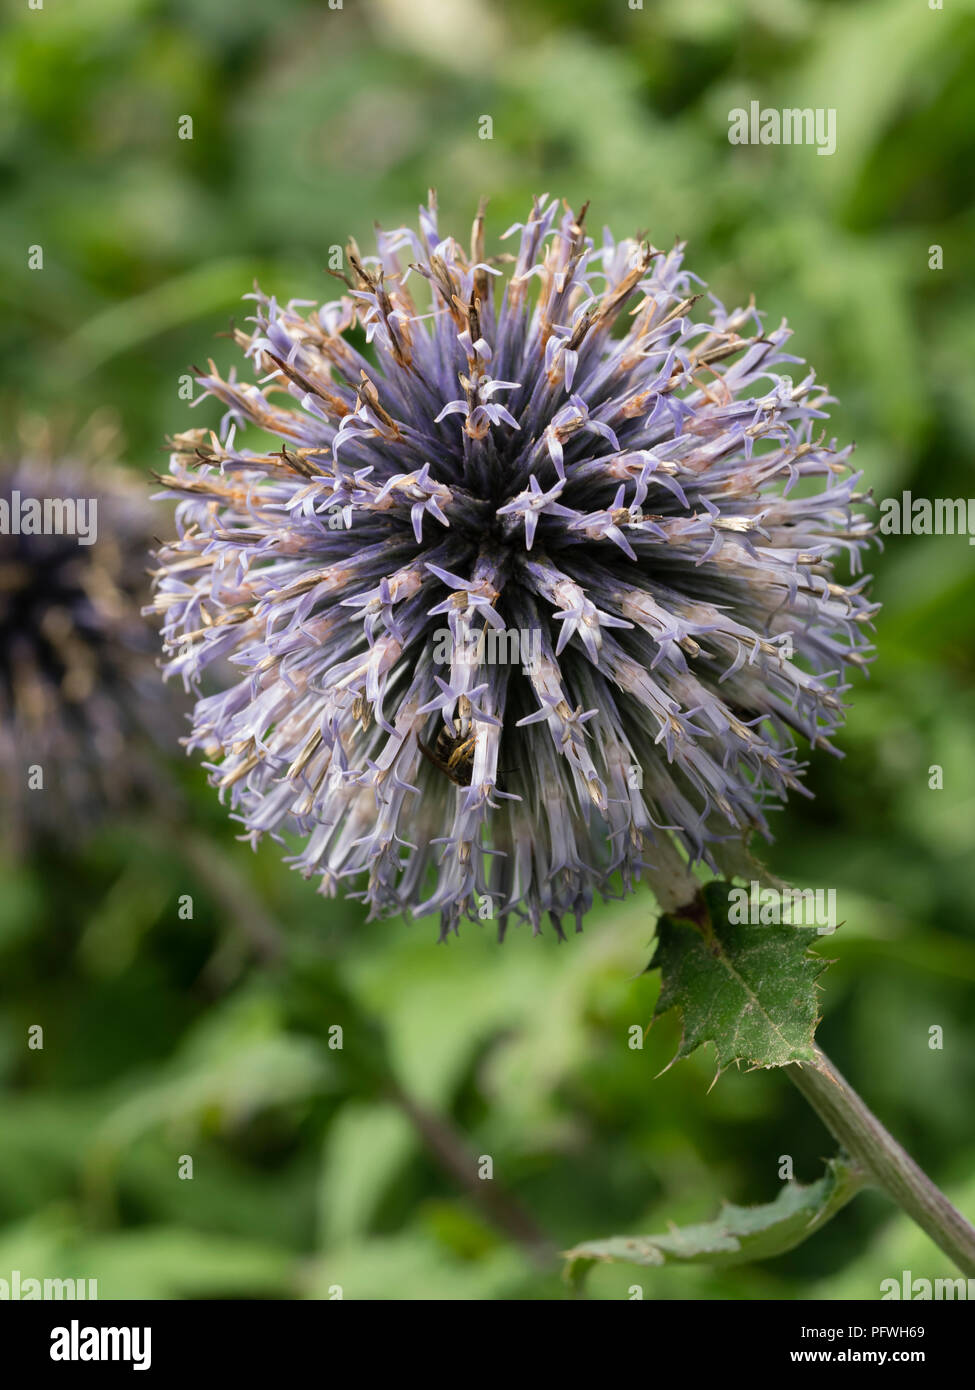 Blue summer flowers in the globular head of the hardy perennial globe thistle, Echinops ritro - Stock Image